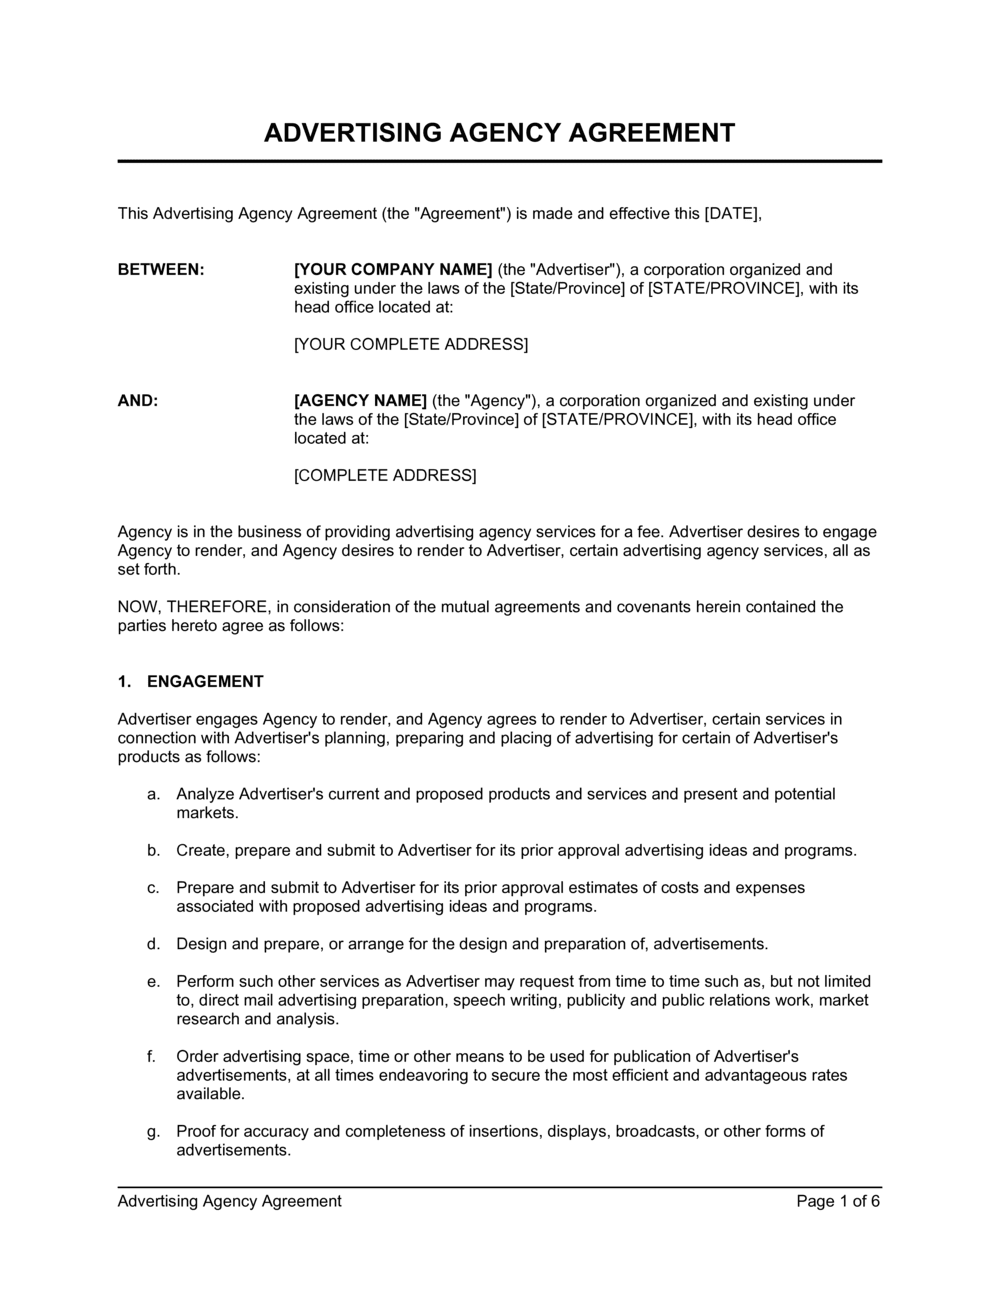 Business-in-a-Box's Advertising Agency Agreement Template